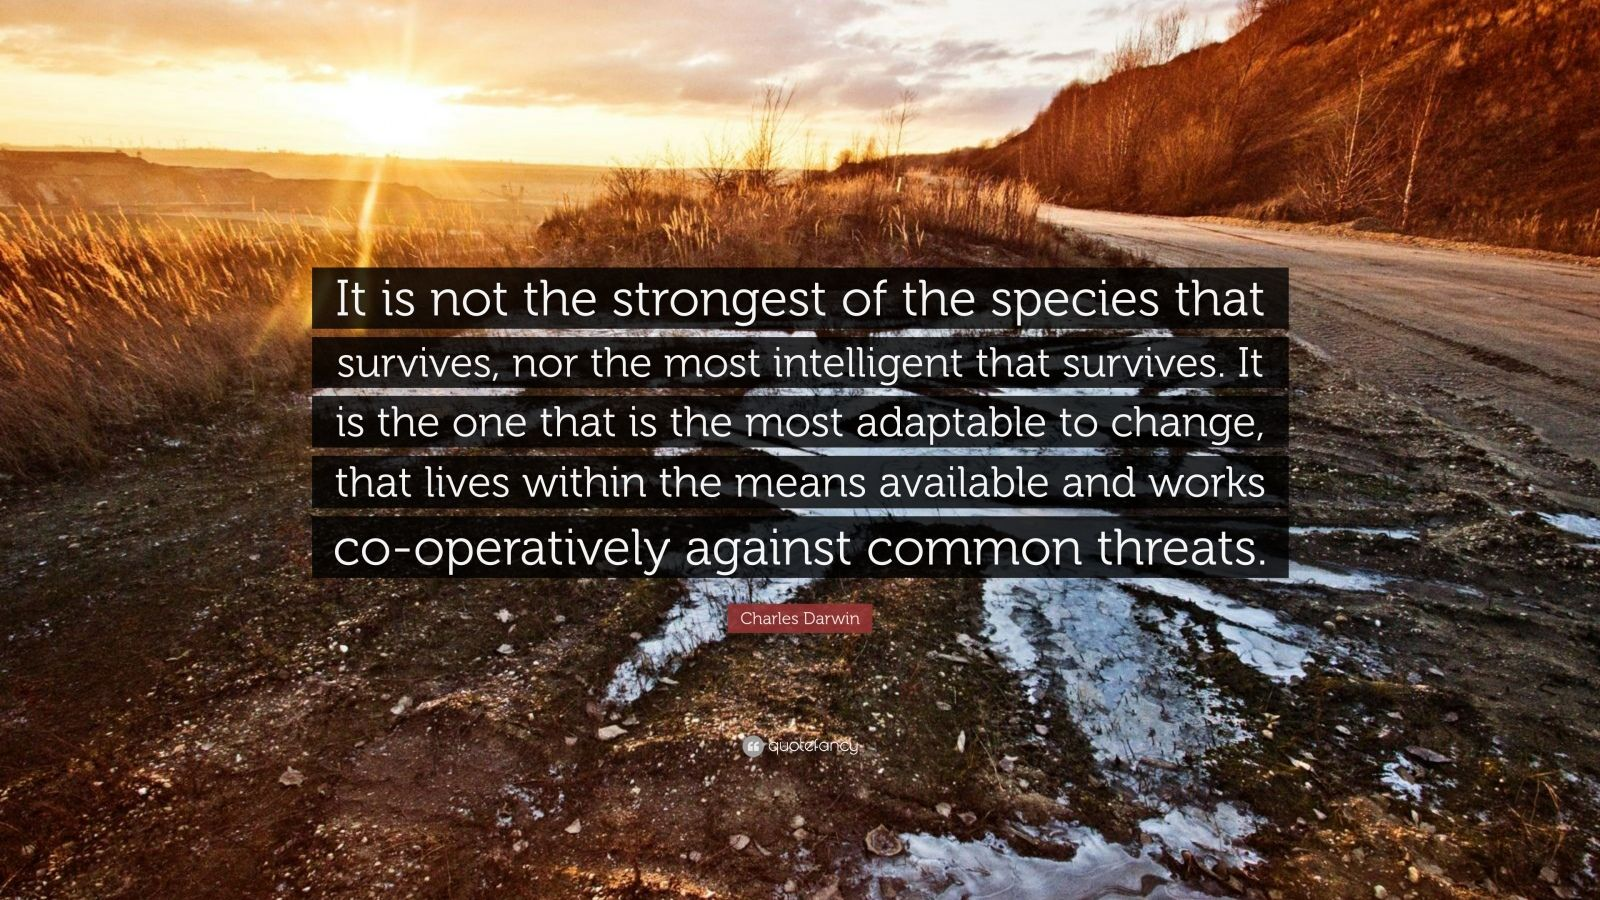 "Charles Darwin Quote: ""It is not the strongest of the species that survives, nor the most intelligent that survives. It is the one that is the most adaptable to change, that lives within the means available and works co-operatively against common threats."""